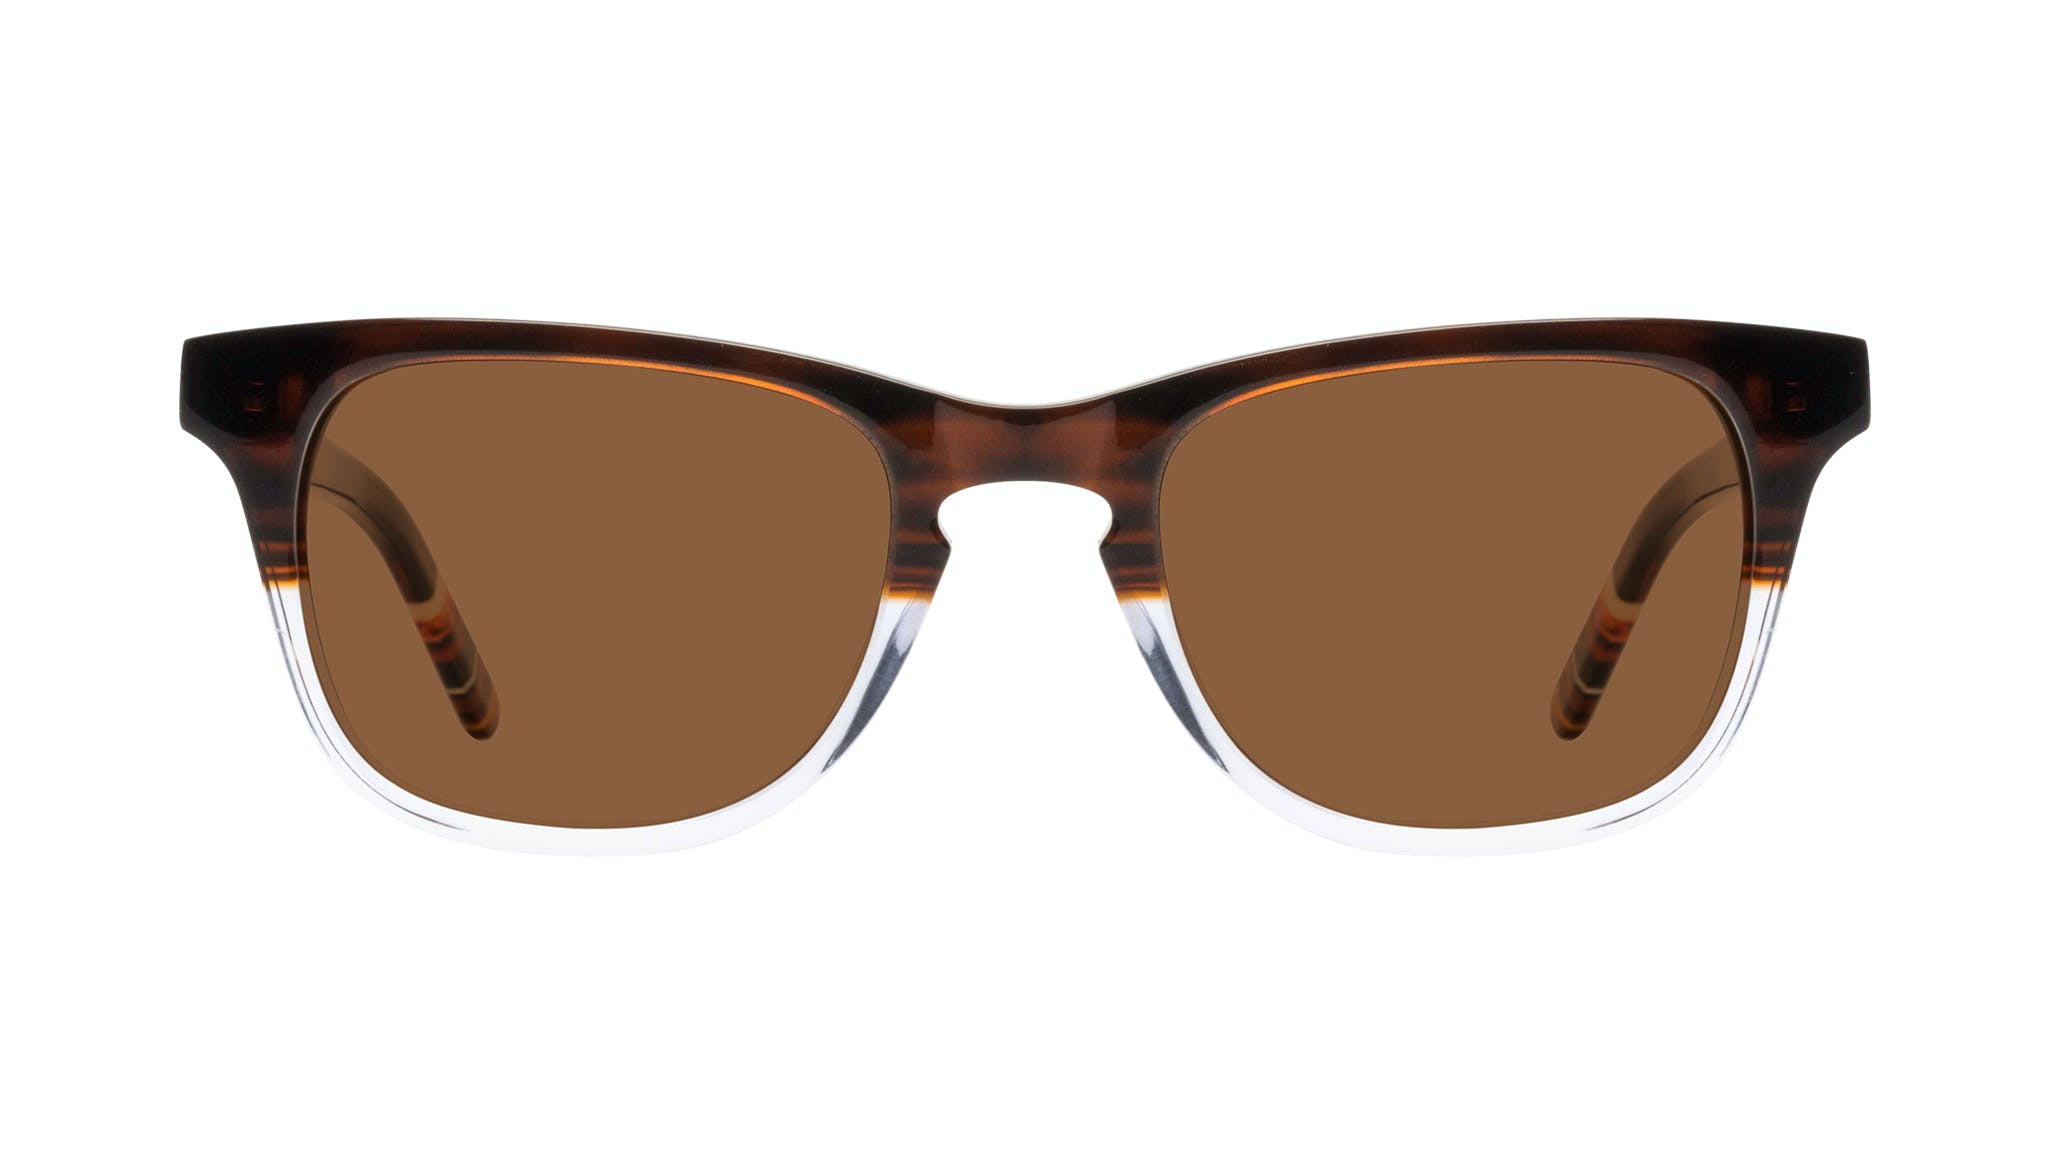 Affordable Fashion Glasses Rectangle Sunglasses Men Trust Bark